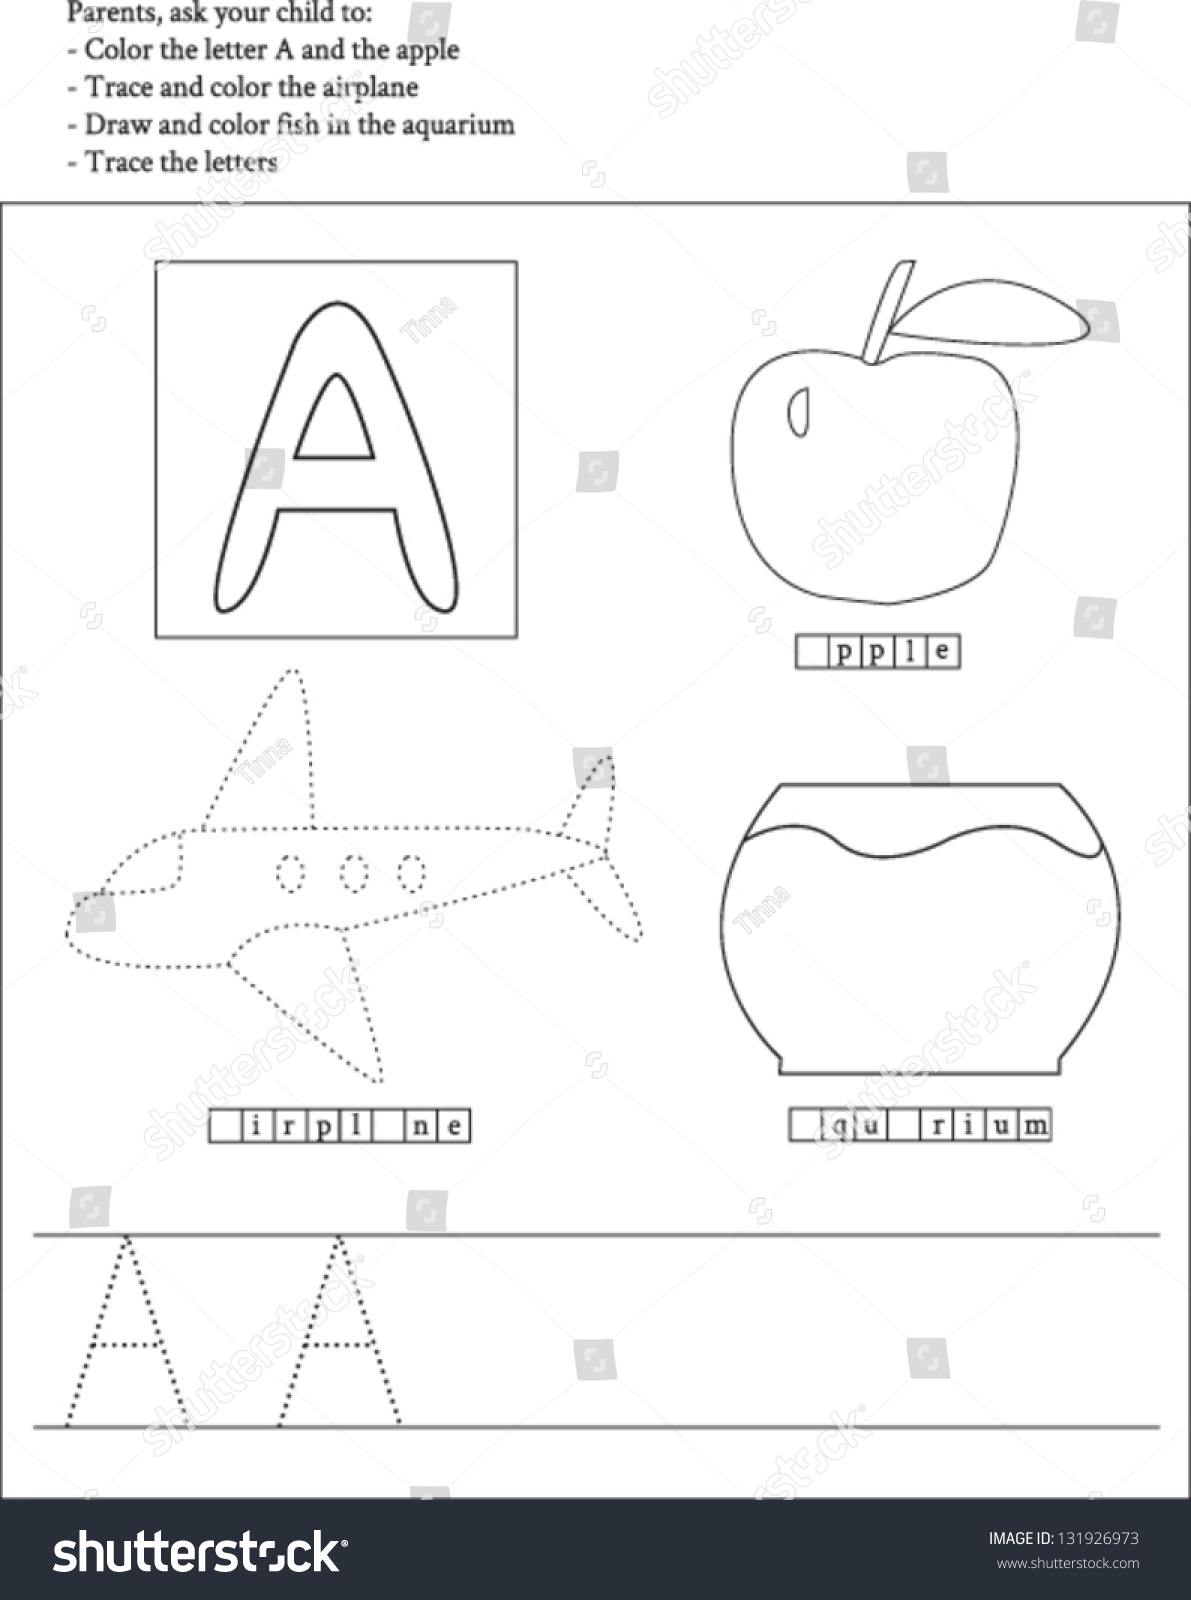 Trace And Color Letter A Worksheet For Preschoolers